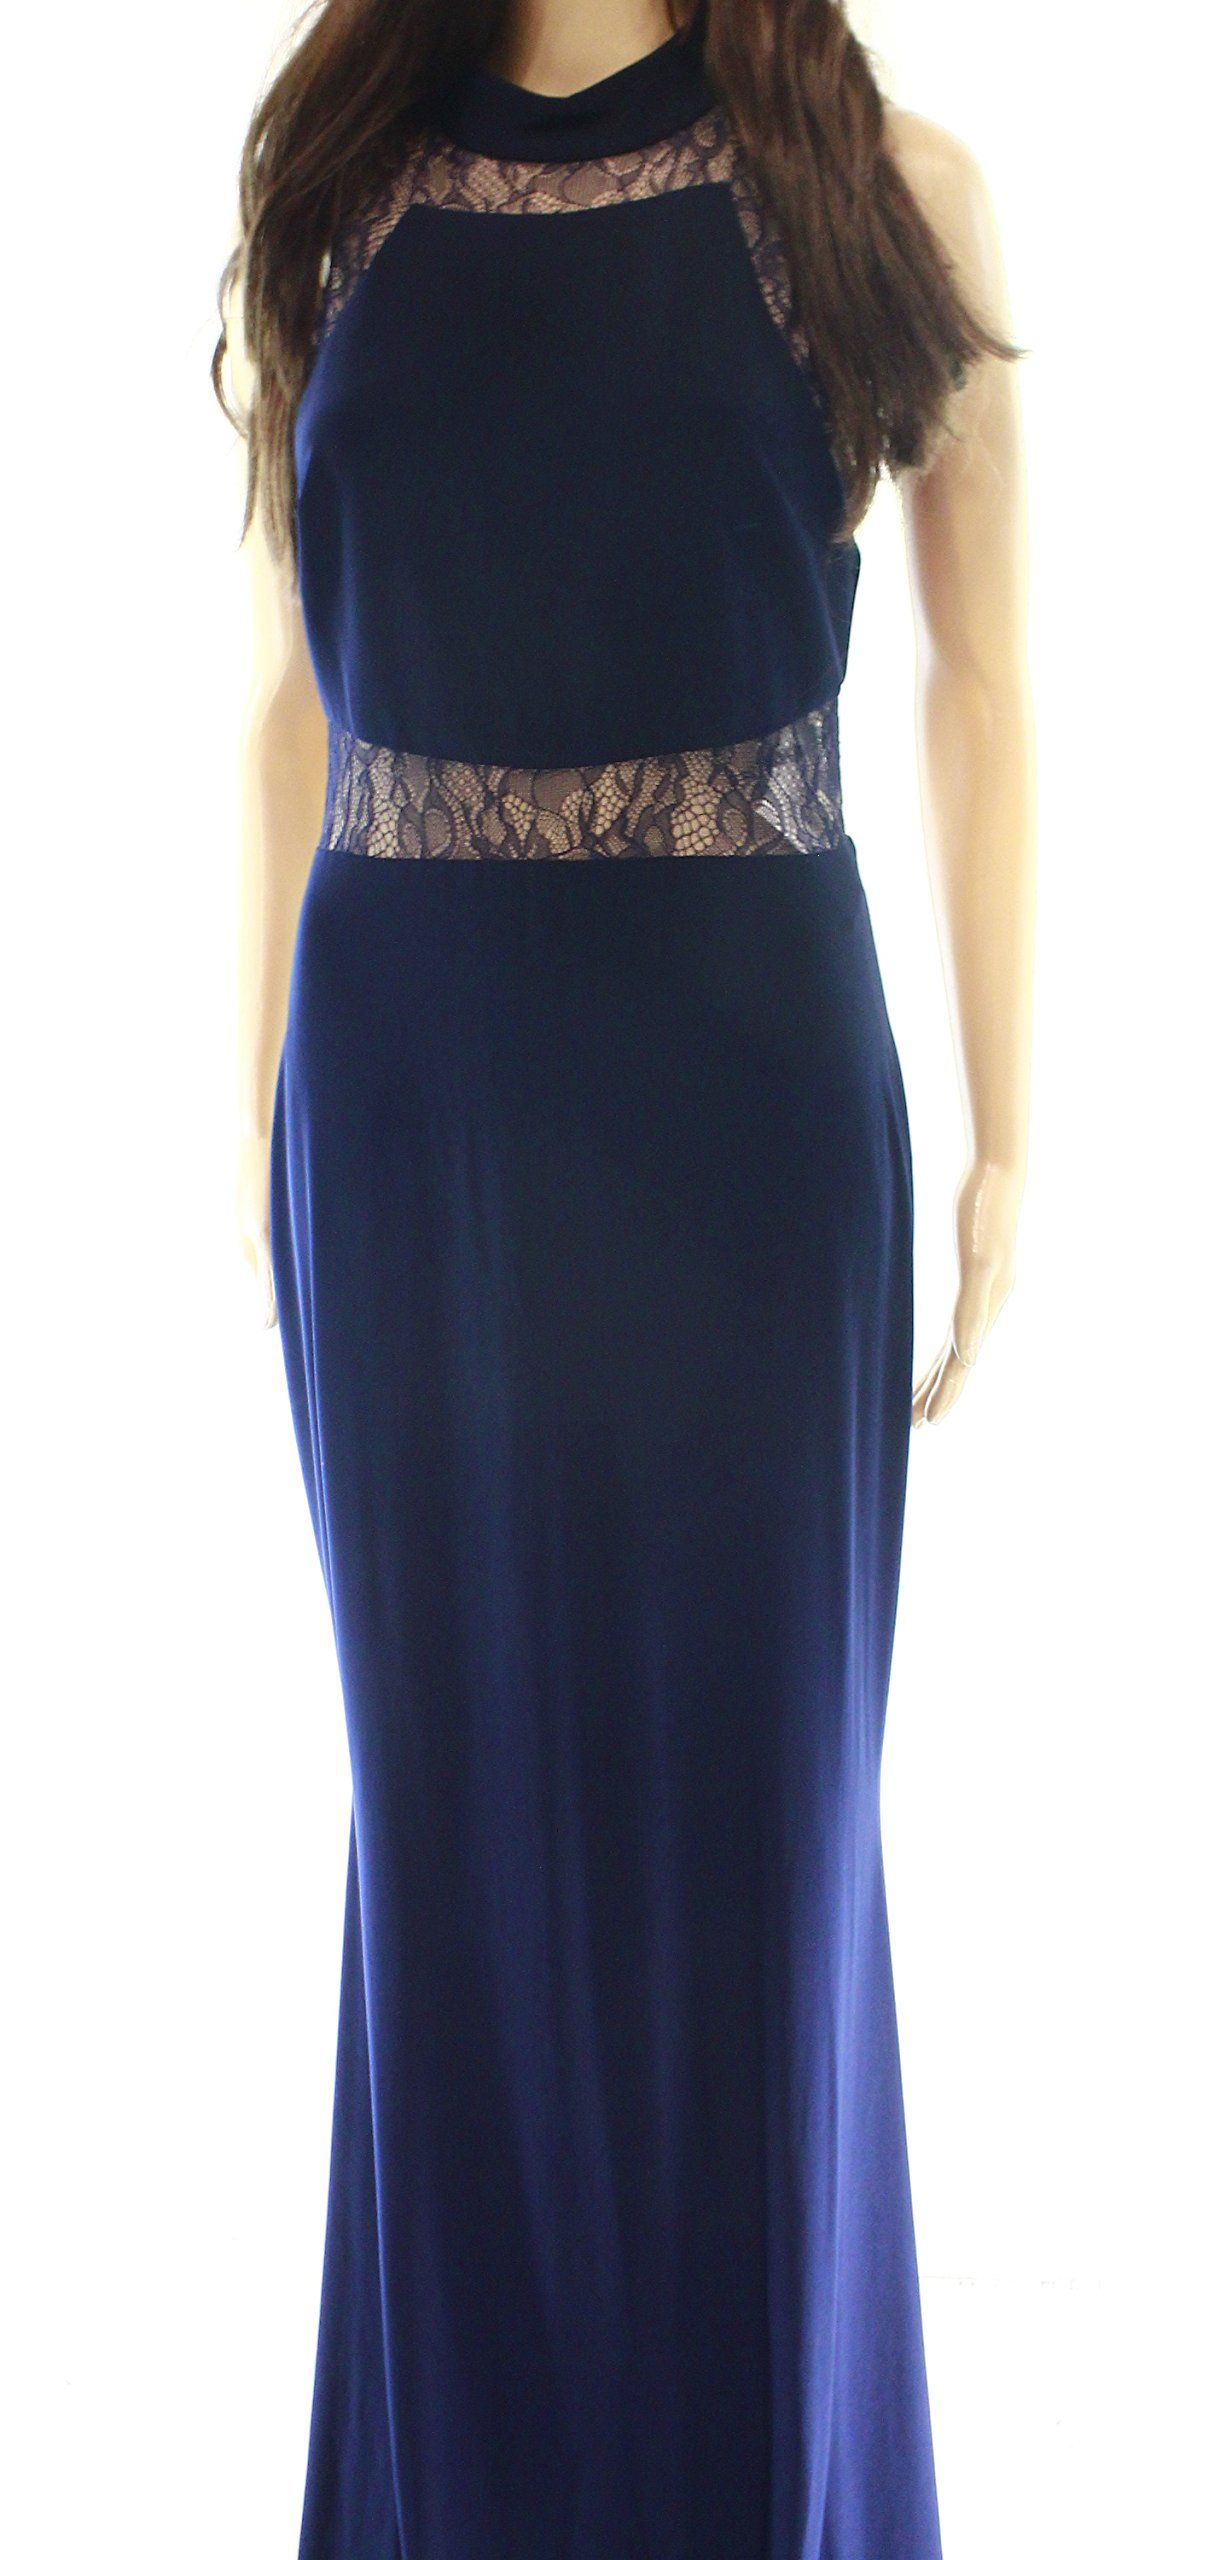 Betsy u adam womenus floral lace ball gown dress blue apparel